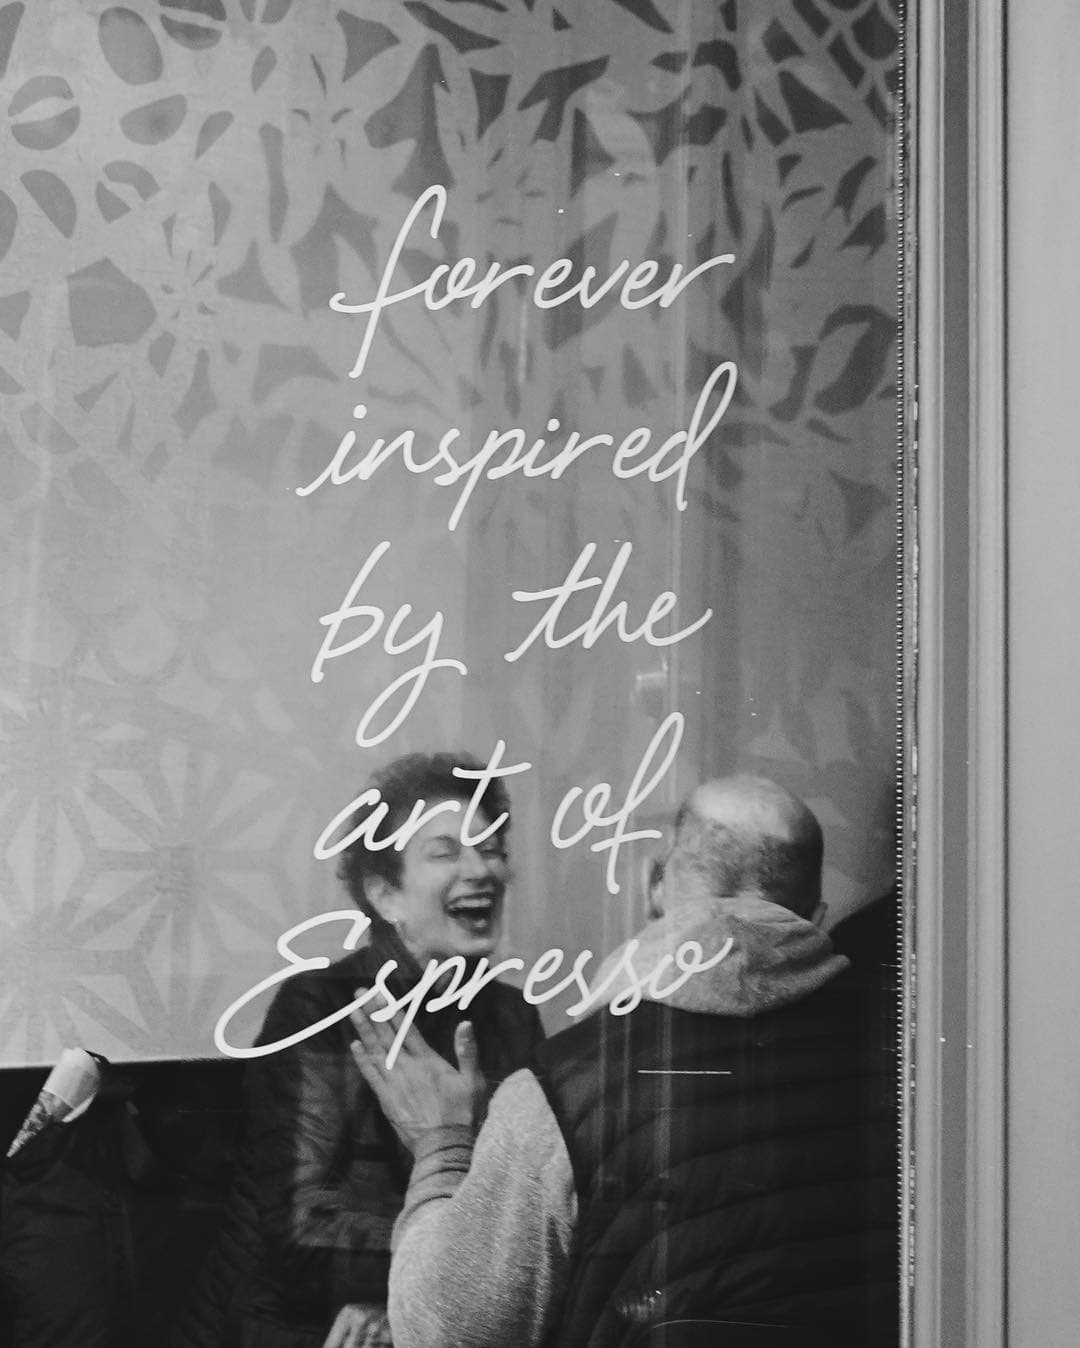 forever inspired by the love of esperros starbucks window with couple laughing inside